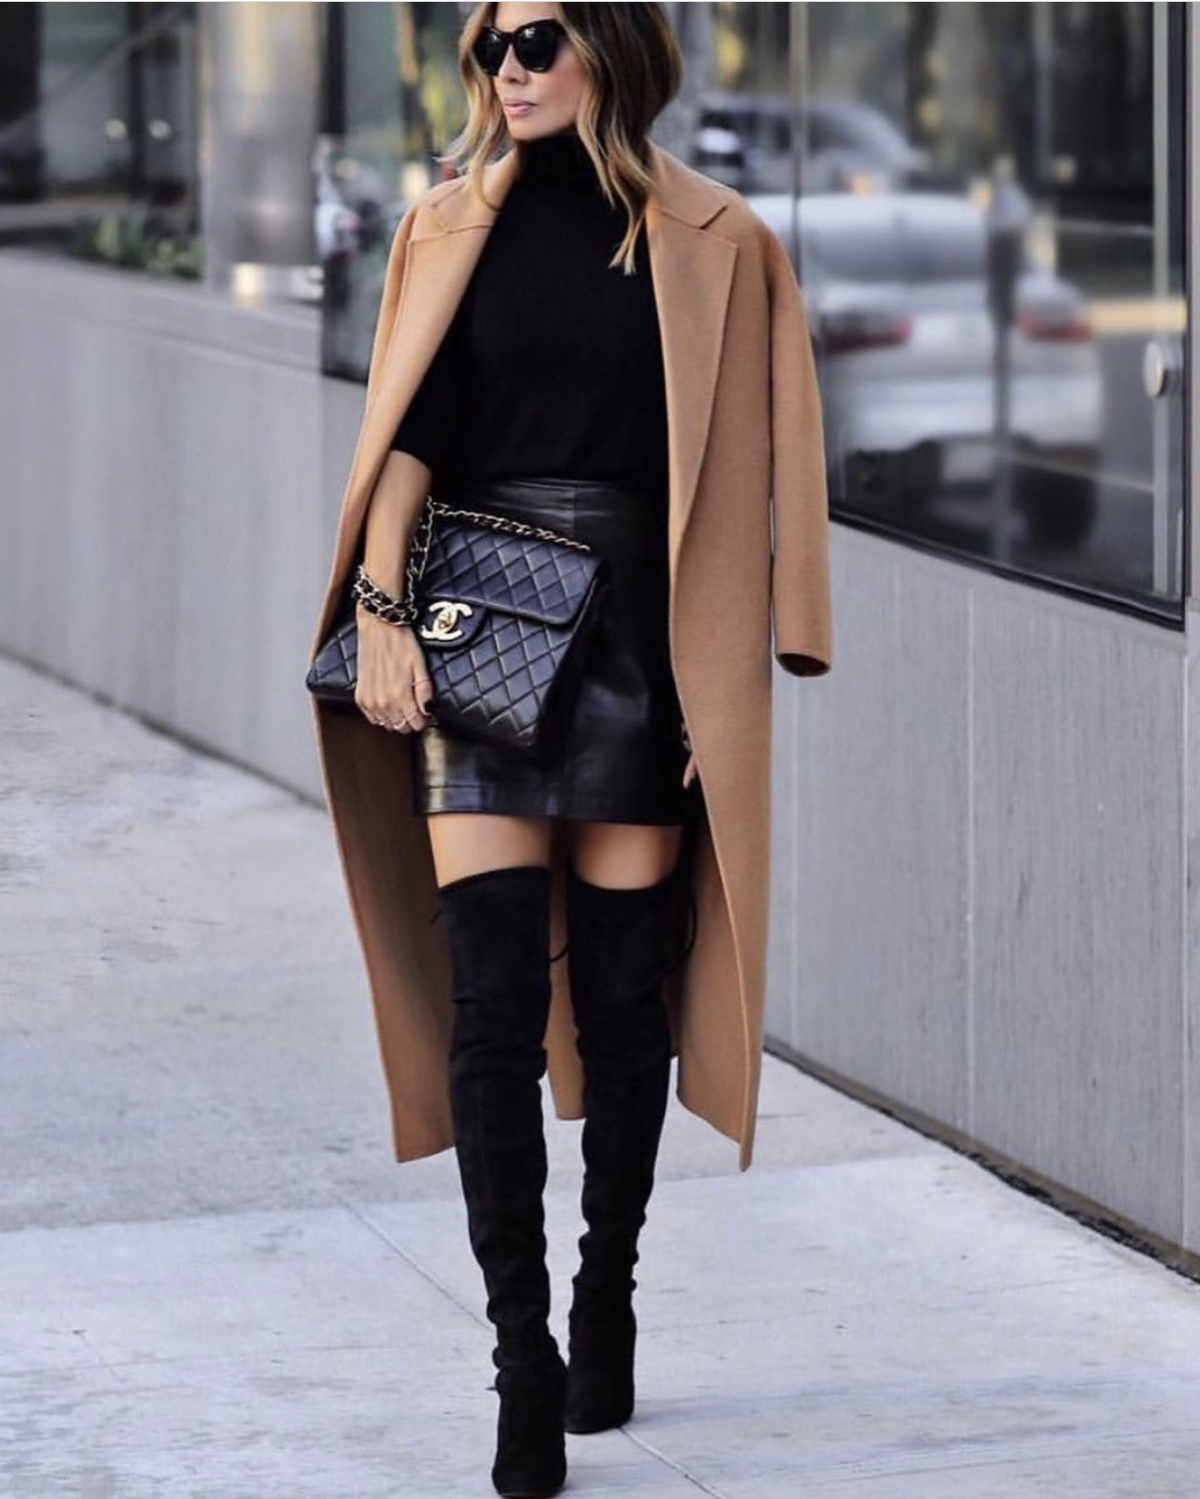 fashion blogger lolario style dresses up in stylish thanksgiving outfits featuring an all black outfit and camel coat | lolariostyle.com